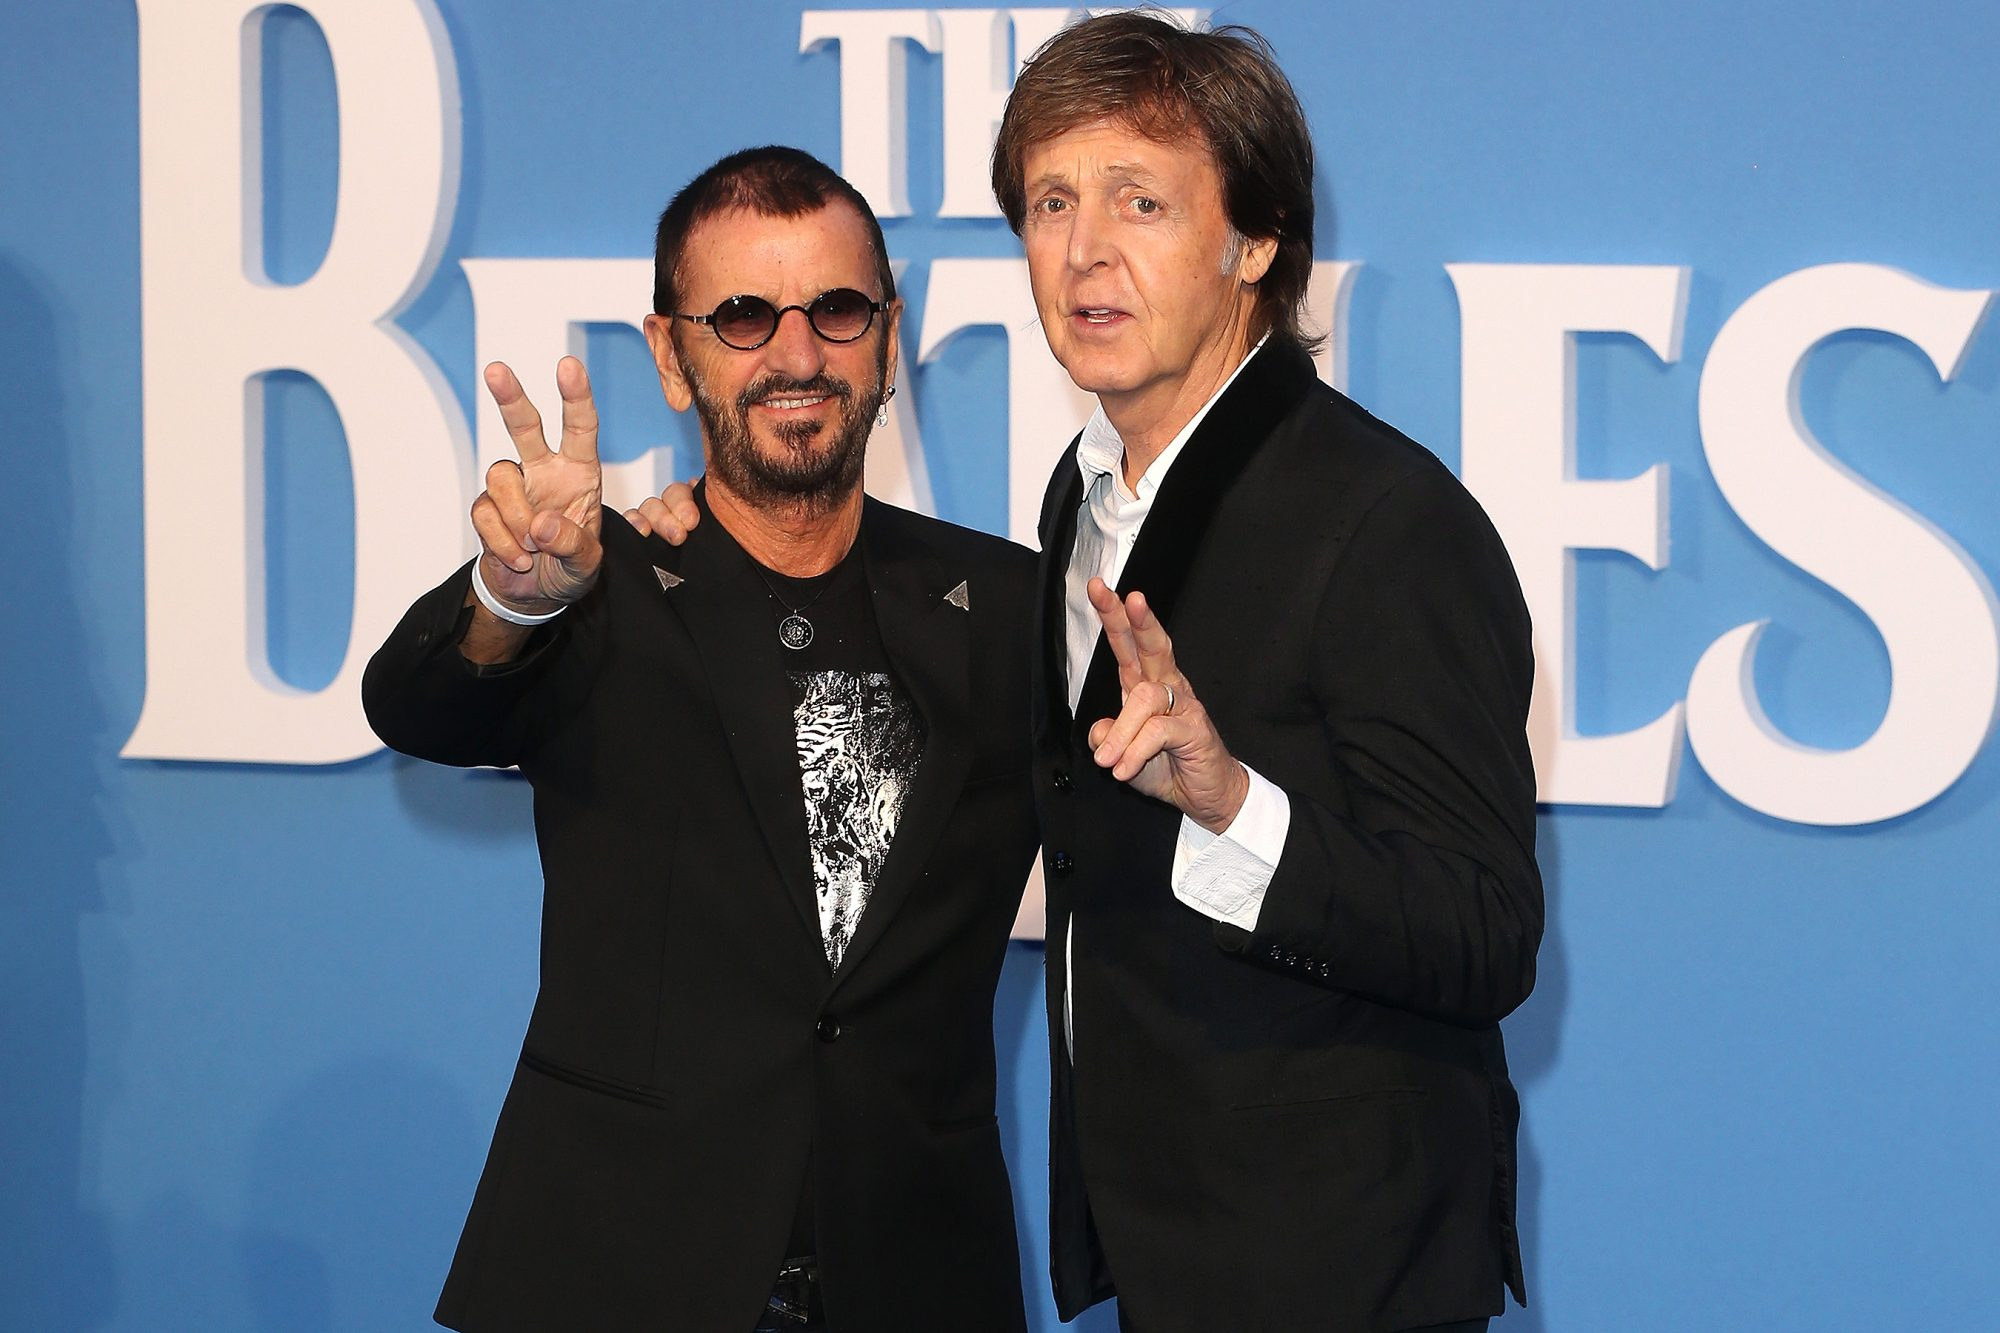 5. Paul McCartney with a little help from Ringo